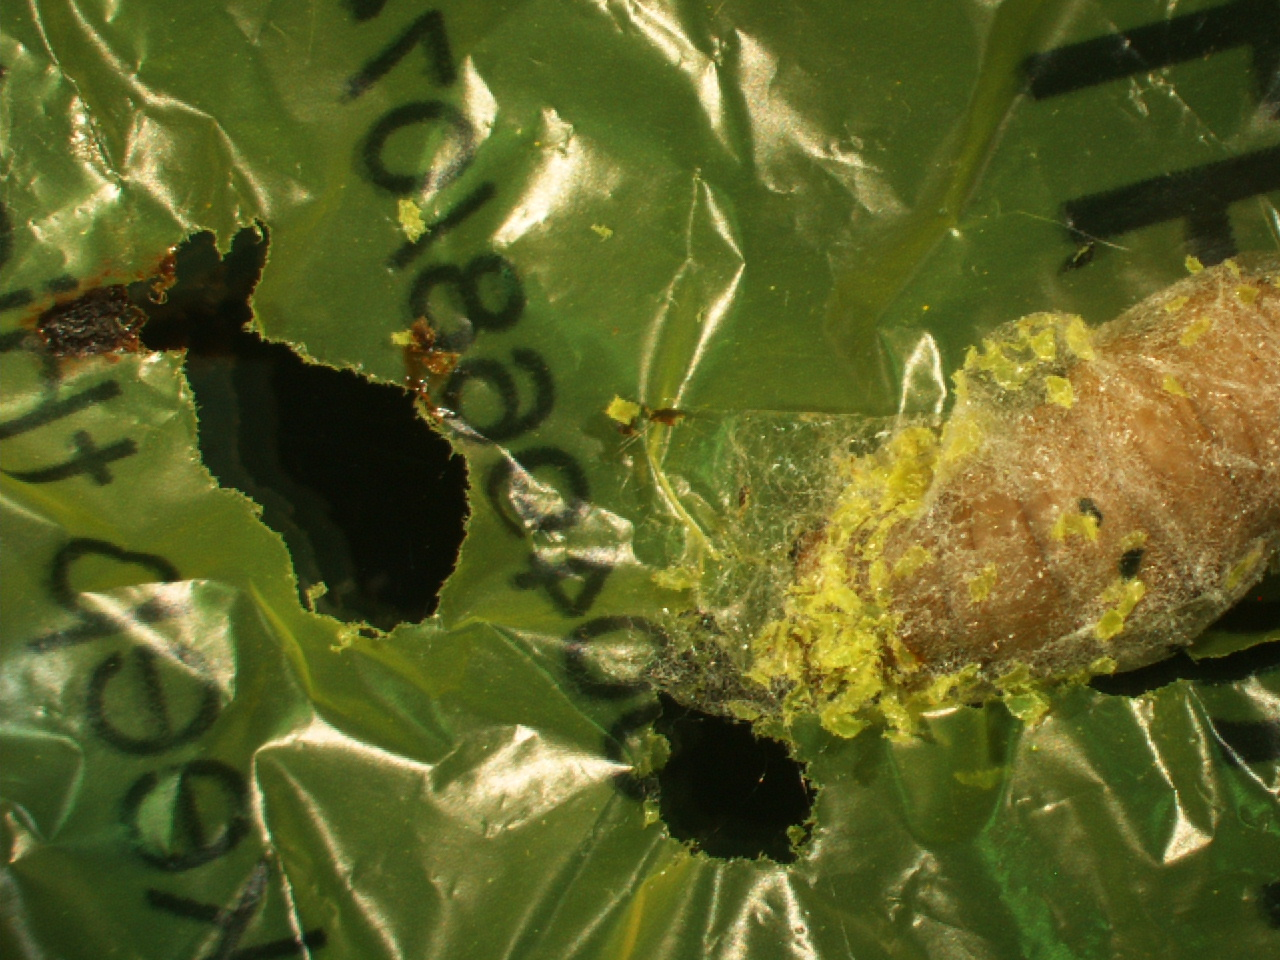 Caterpillar found to eat shopping bags suggesting biodegradable solution to plastic pollution